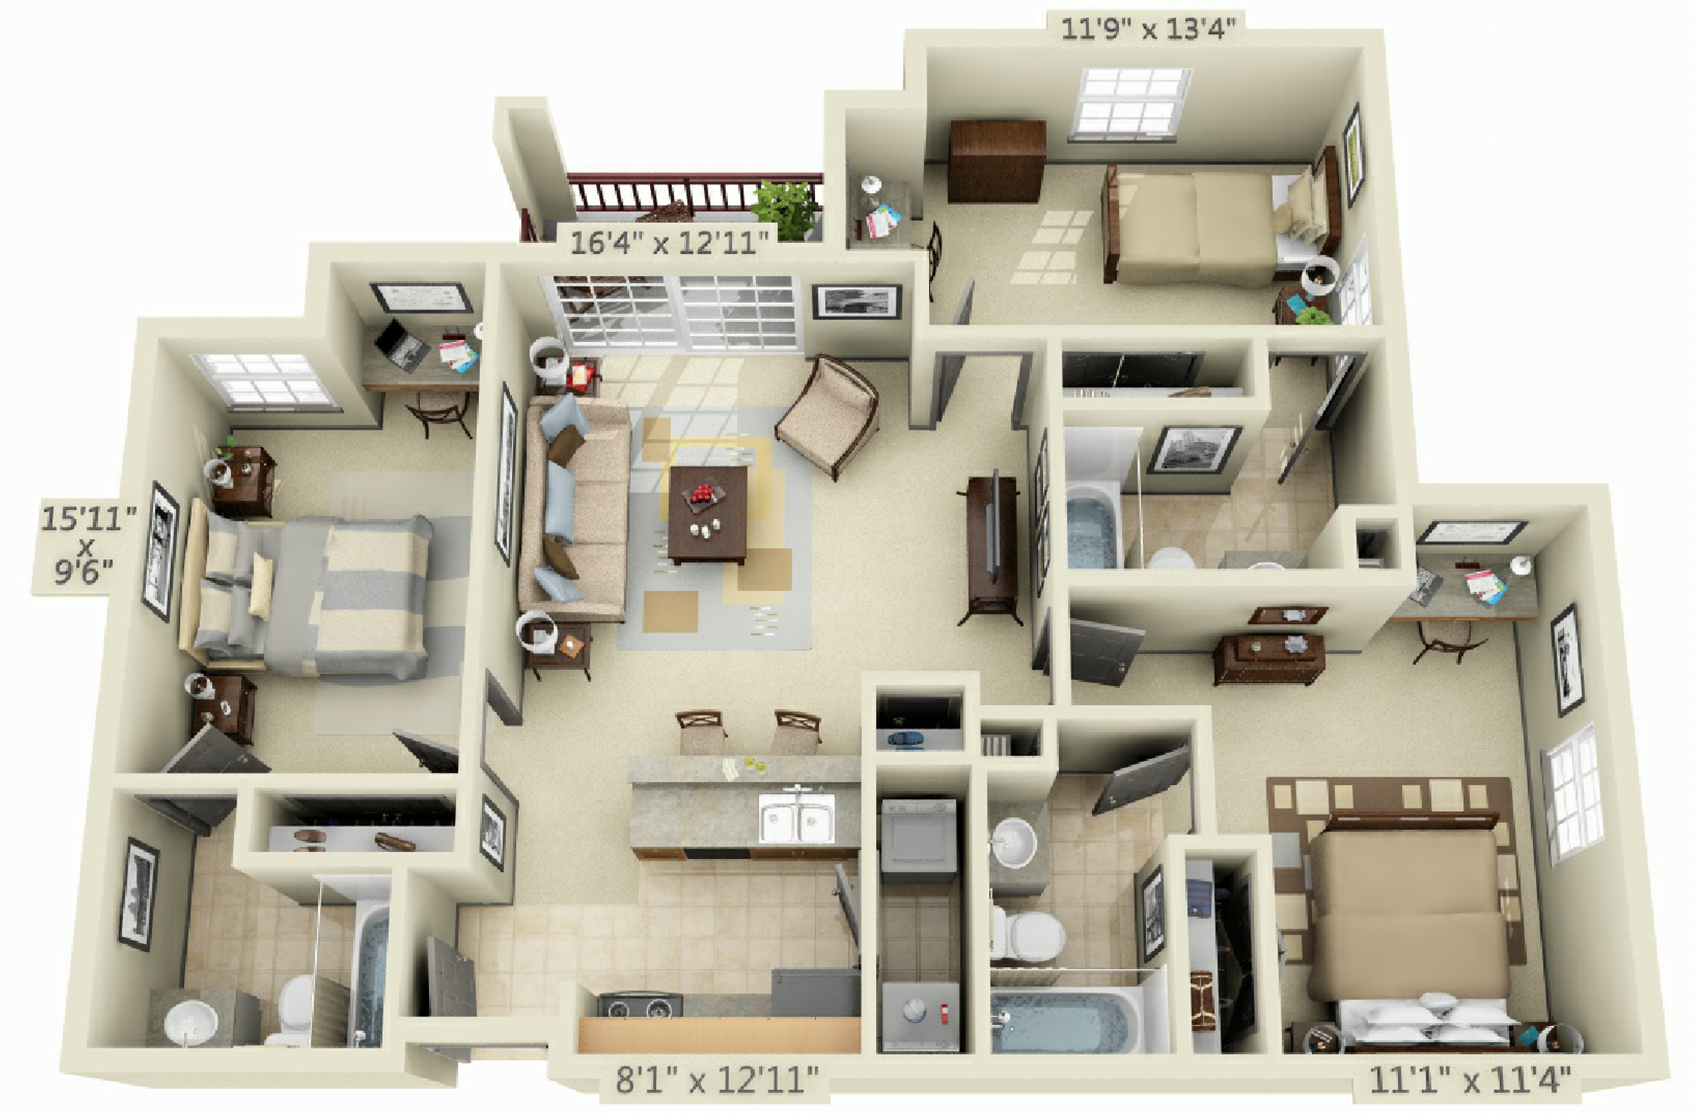 3 Bedroom 3 Bath Sims House Design House Layout Plans Sims House